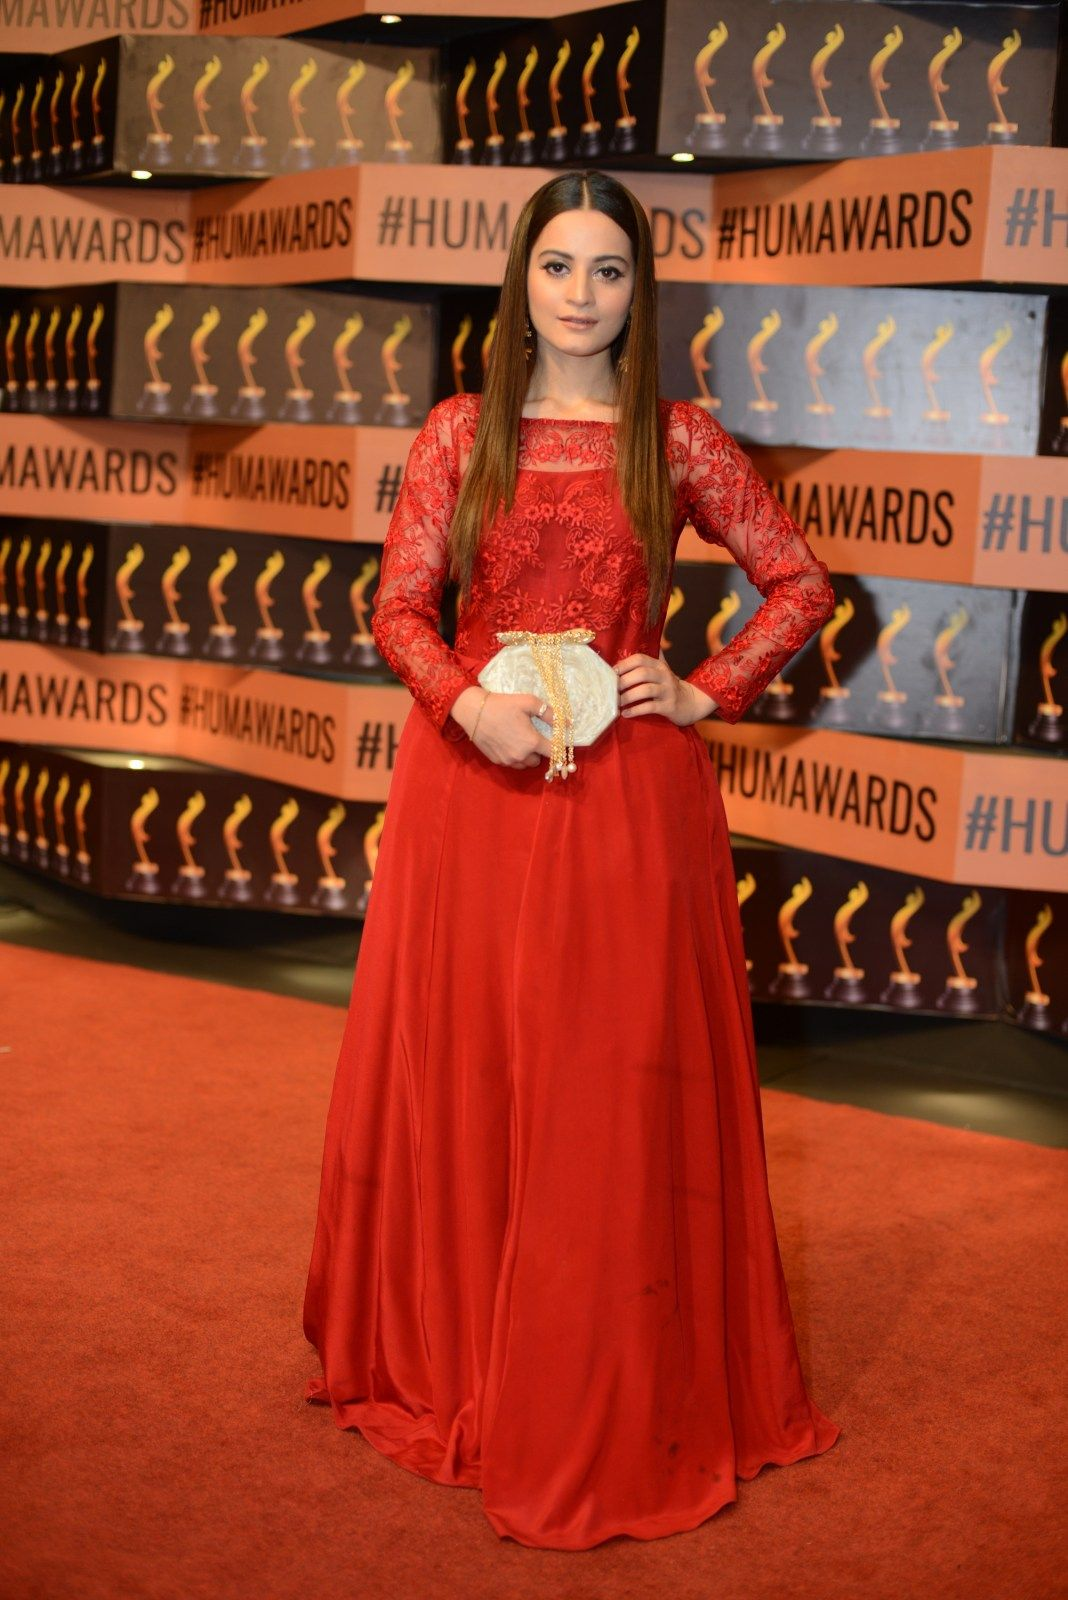 Aiman Khan at Hum Awards | Lollywood in 2019 | Formal